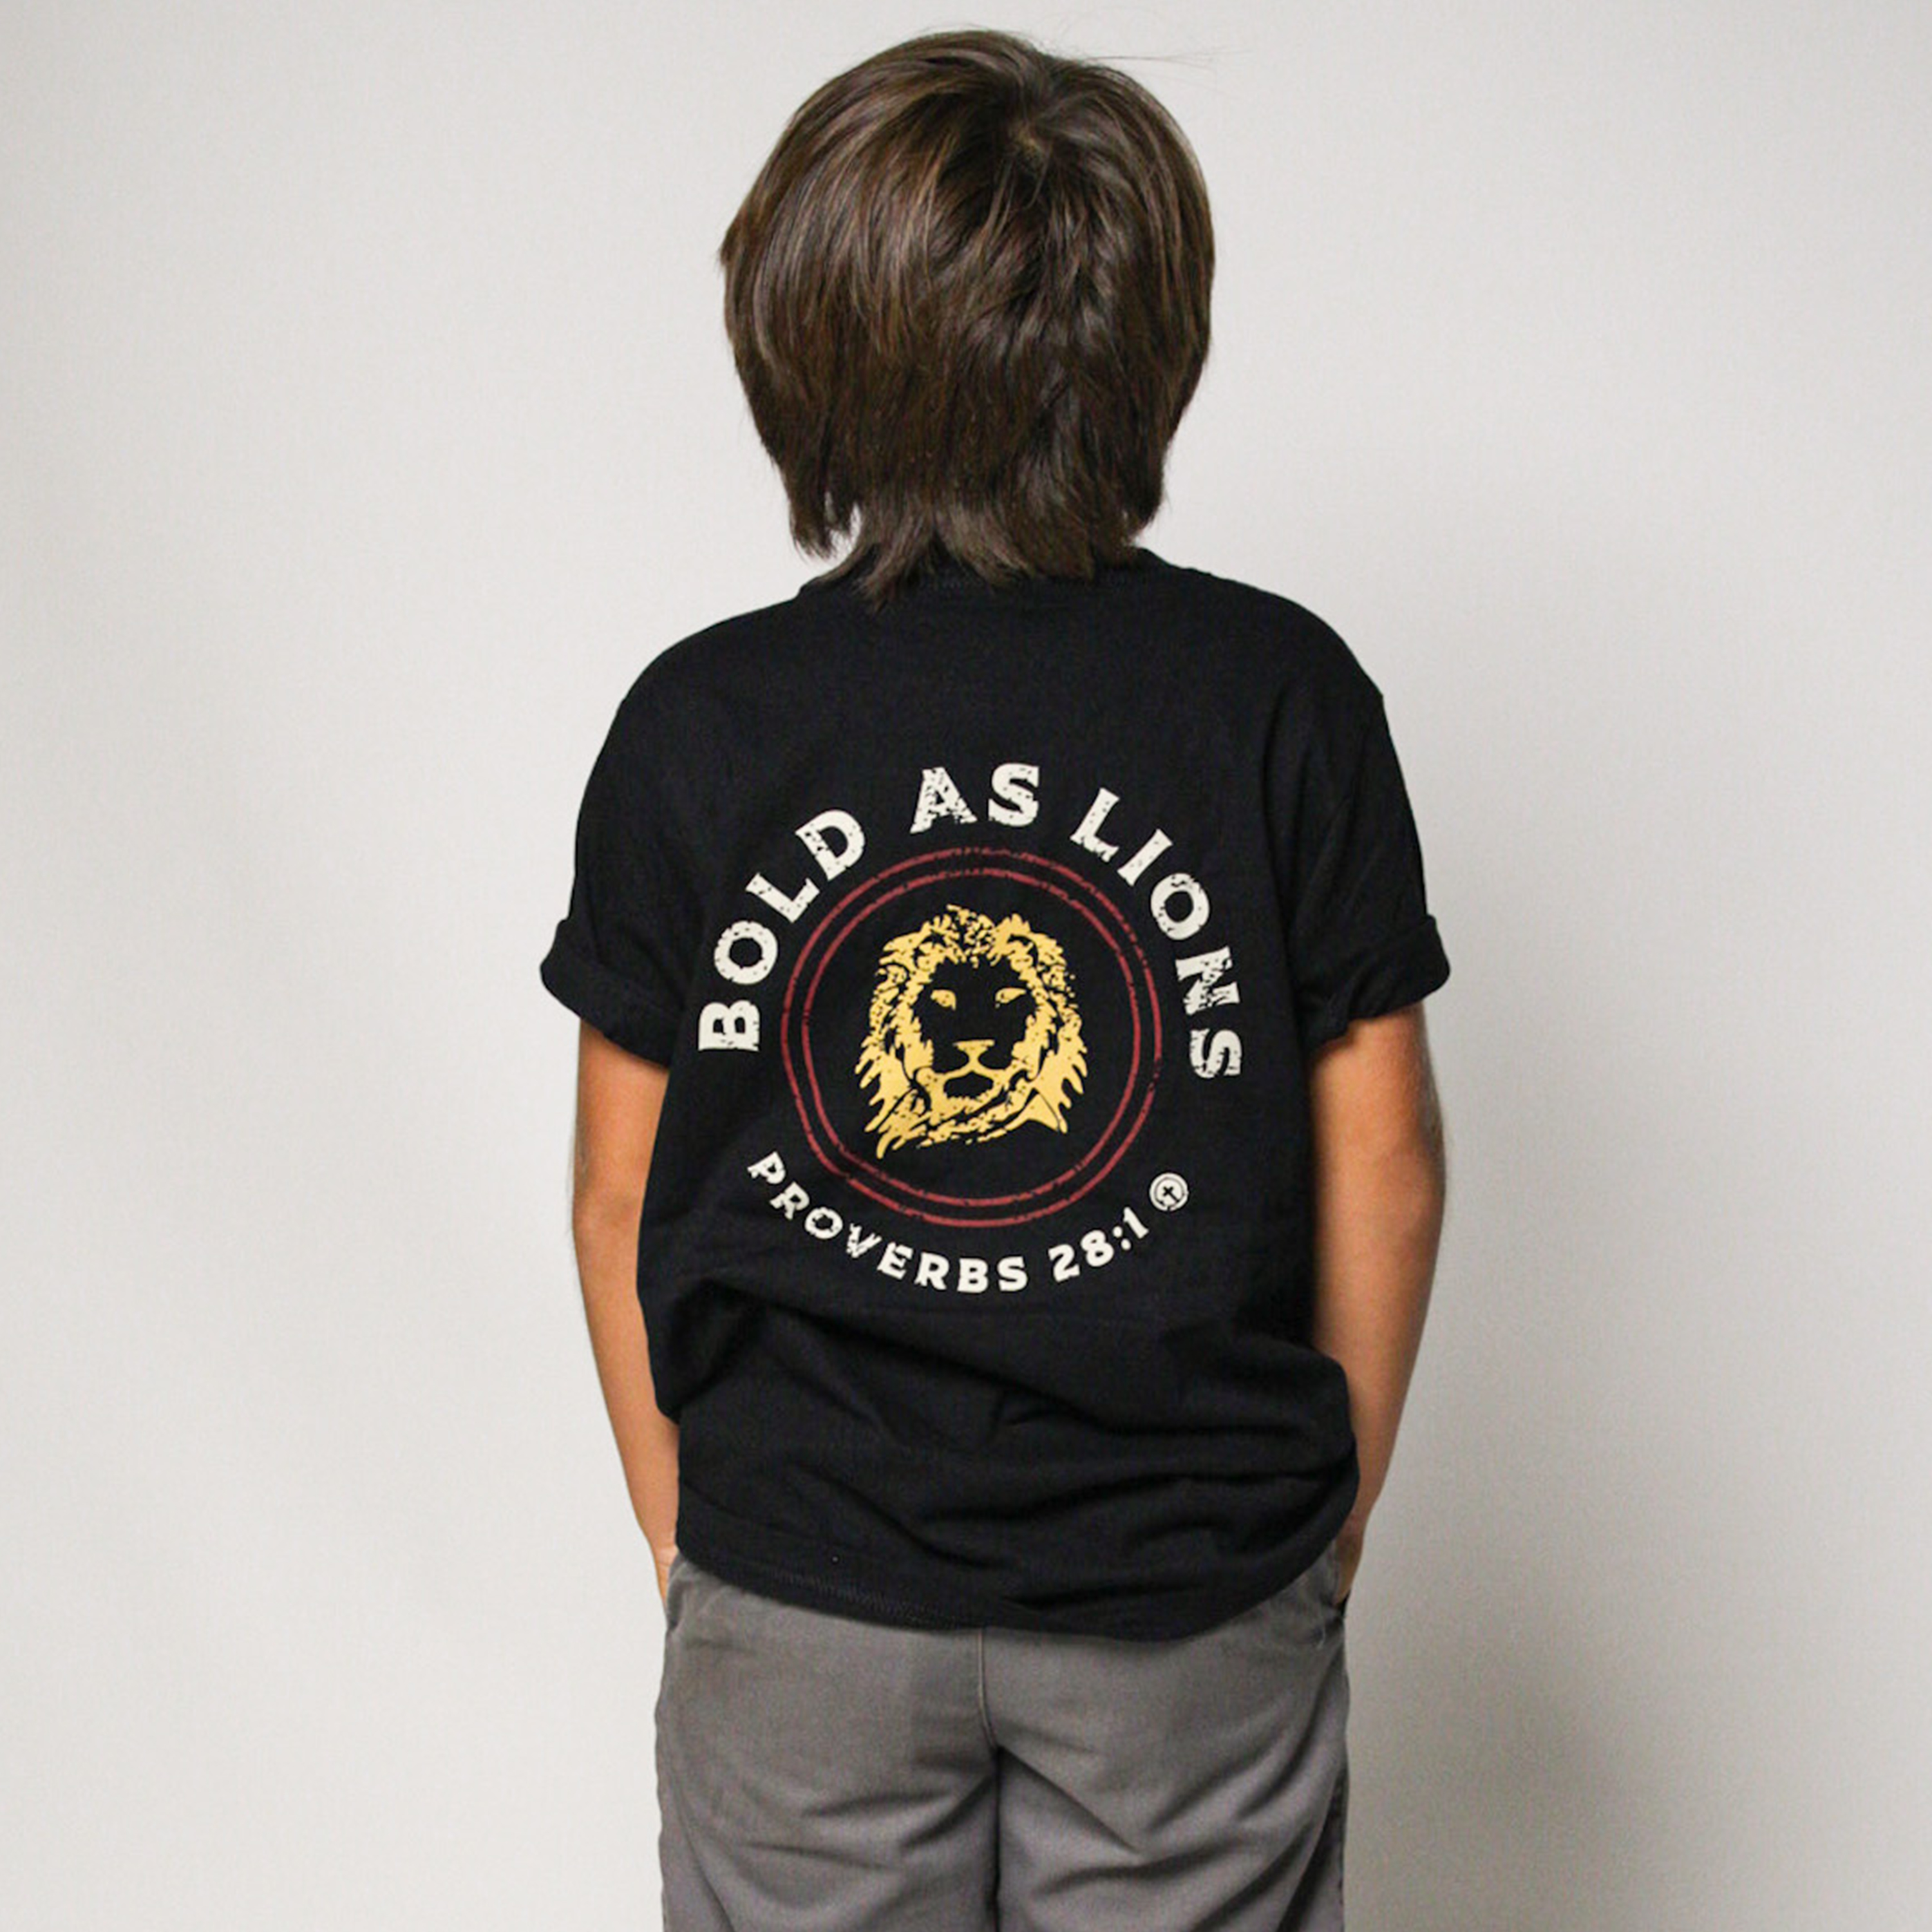 BOLD AS LIONS YOUTH TEE, BLACK